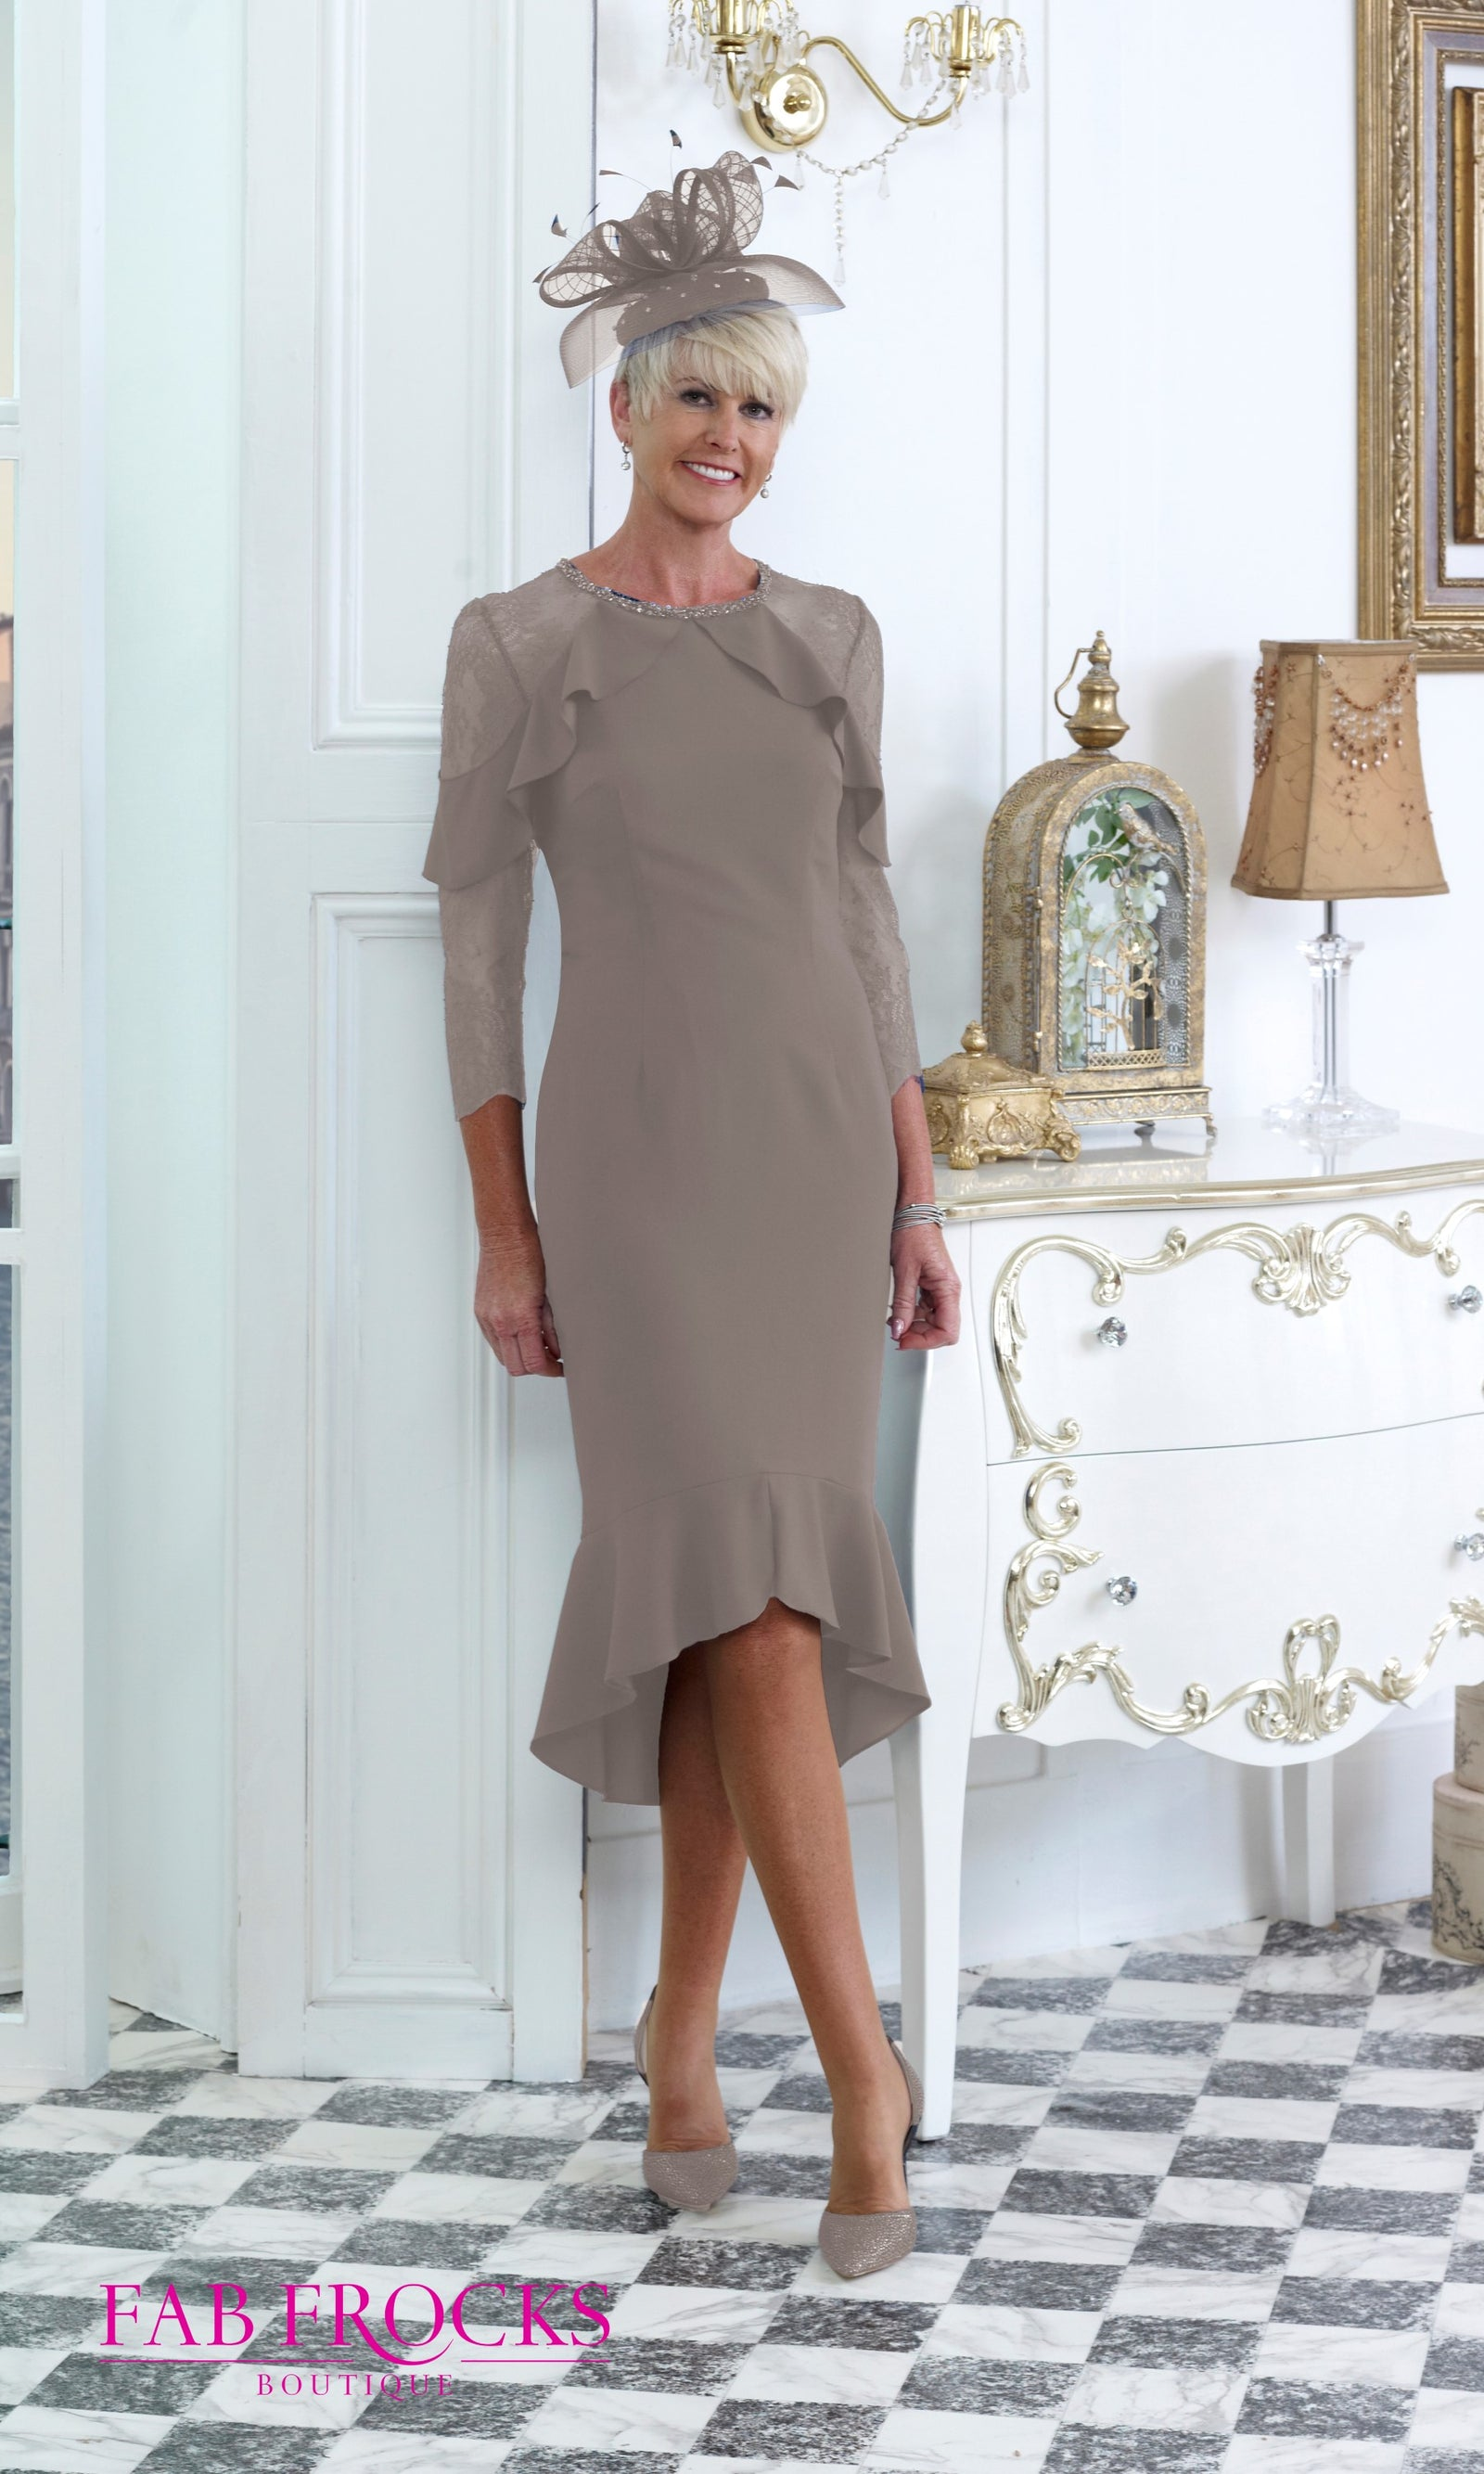 DC289E Mink Dress Code Hi-Lo Dress With Lace Sleeves